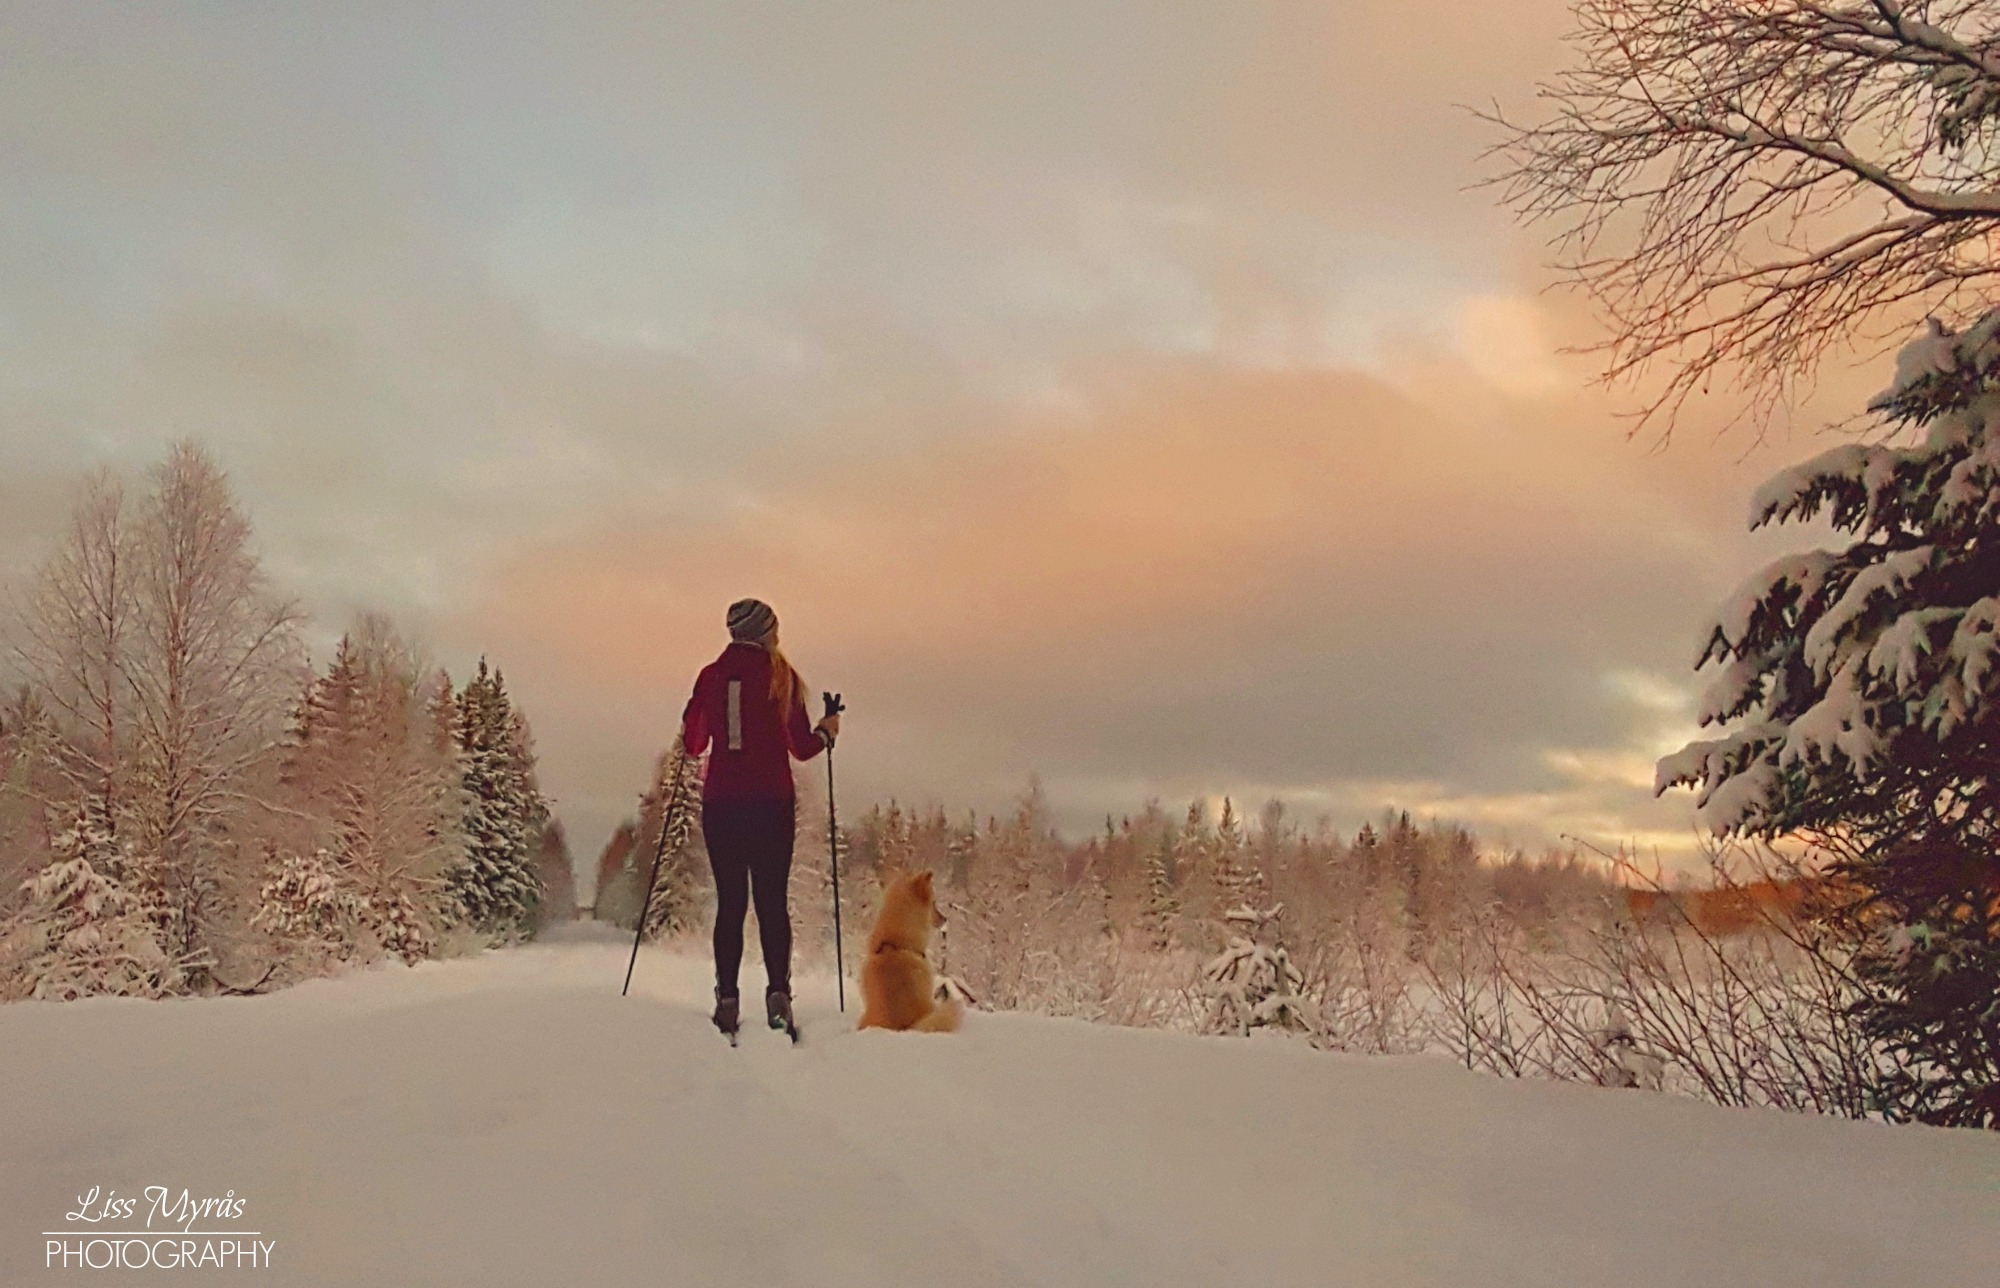 cross country skiing skitur sweden örnsköldsvik winter wonderland lapphund lake frozen snow skispår track sunset bredbyn